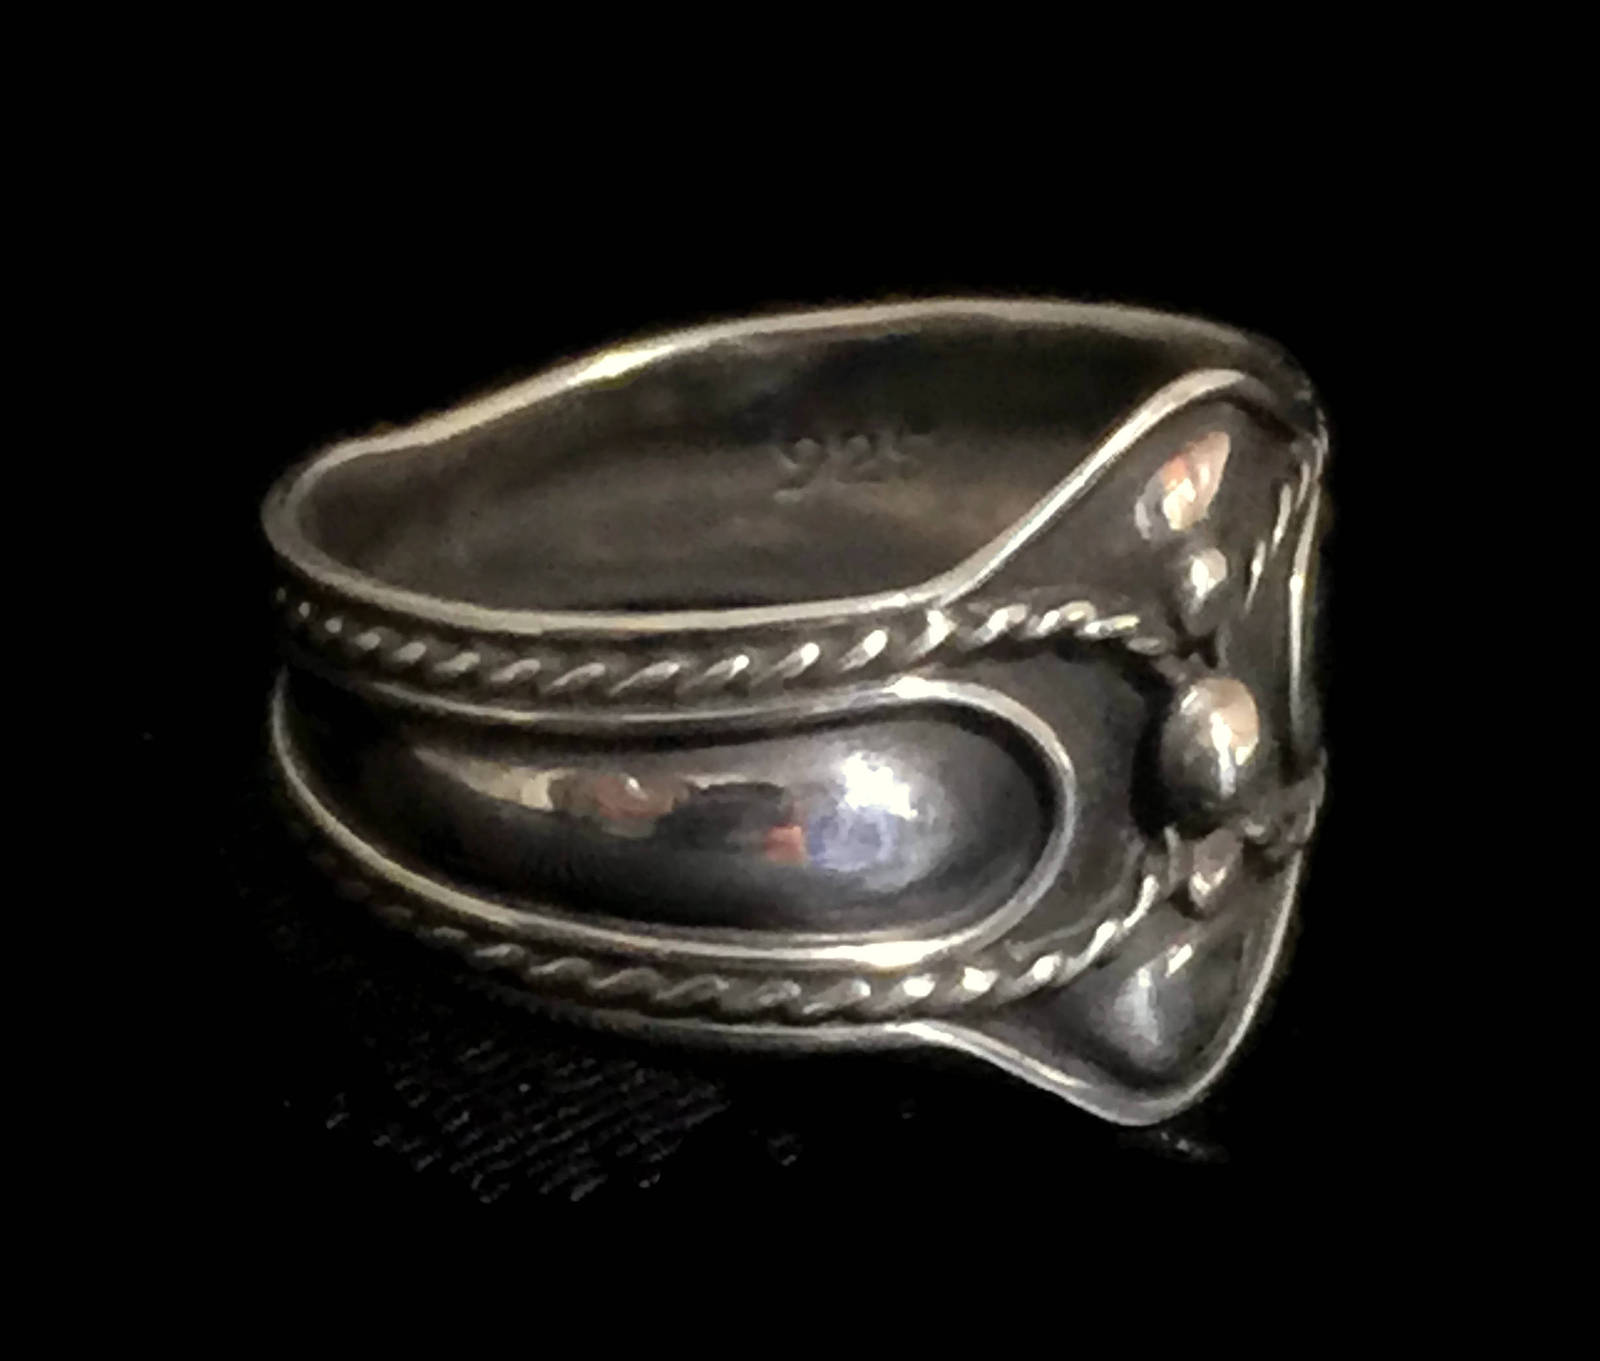 Vintage Cigar Band Sterling Silver Thumb Ring Rope Ball Design Size 7